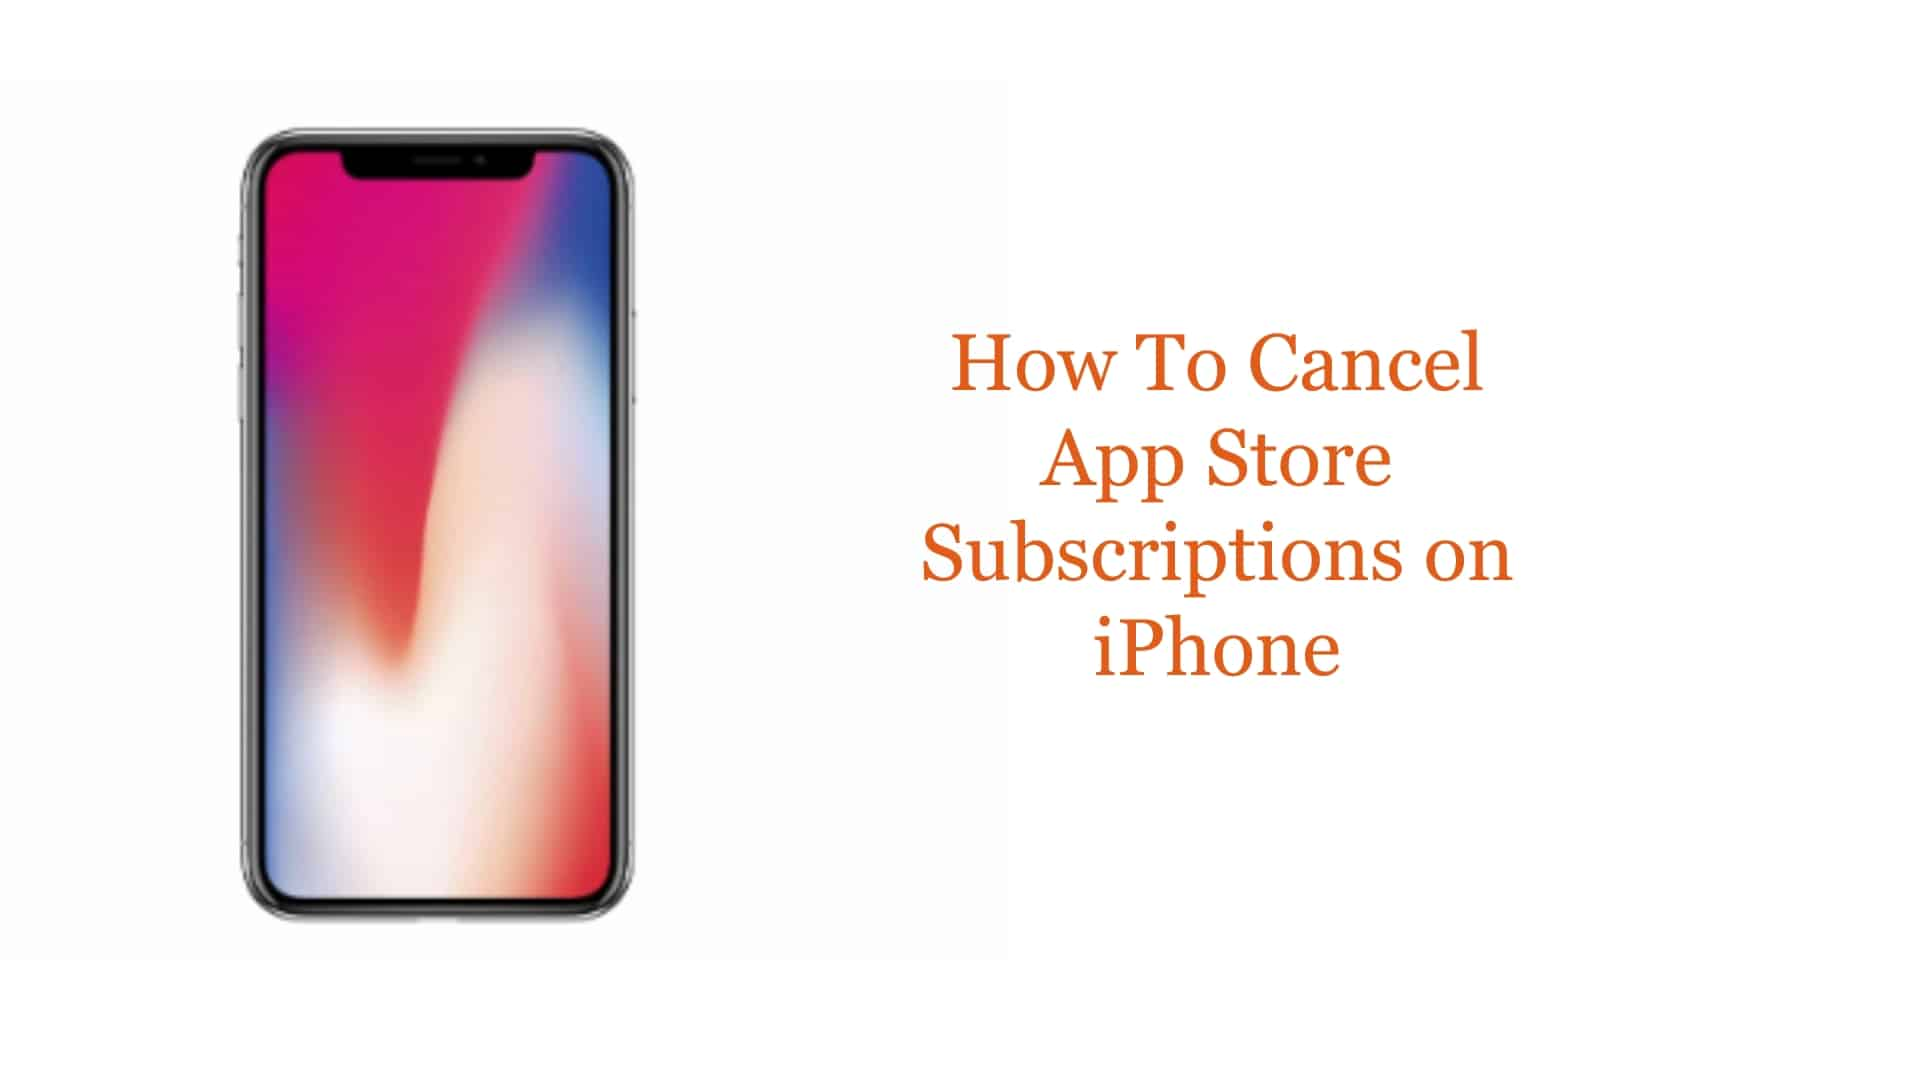 how to cancel app store subscriptions